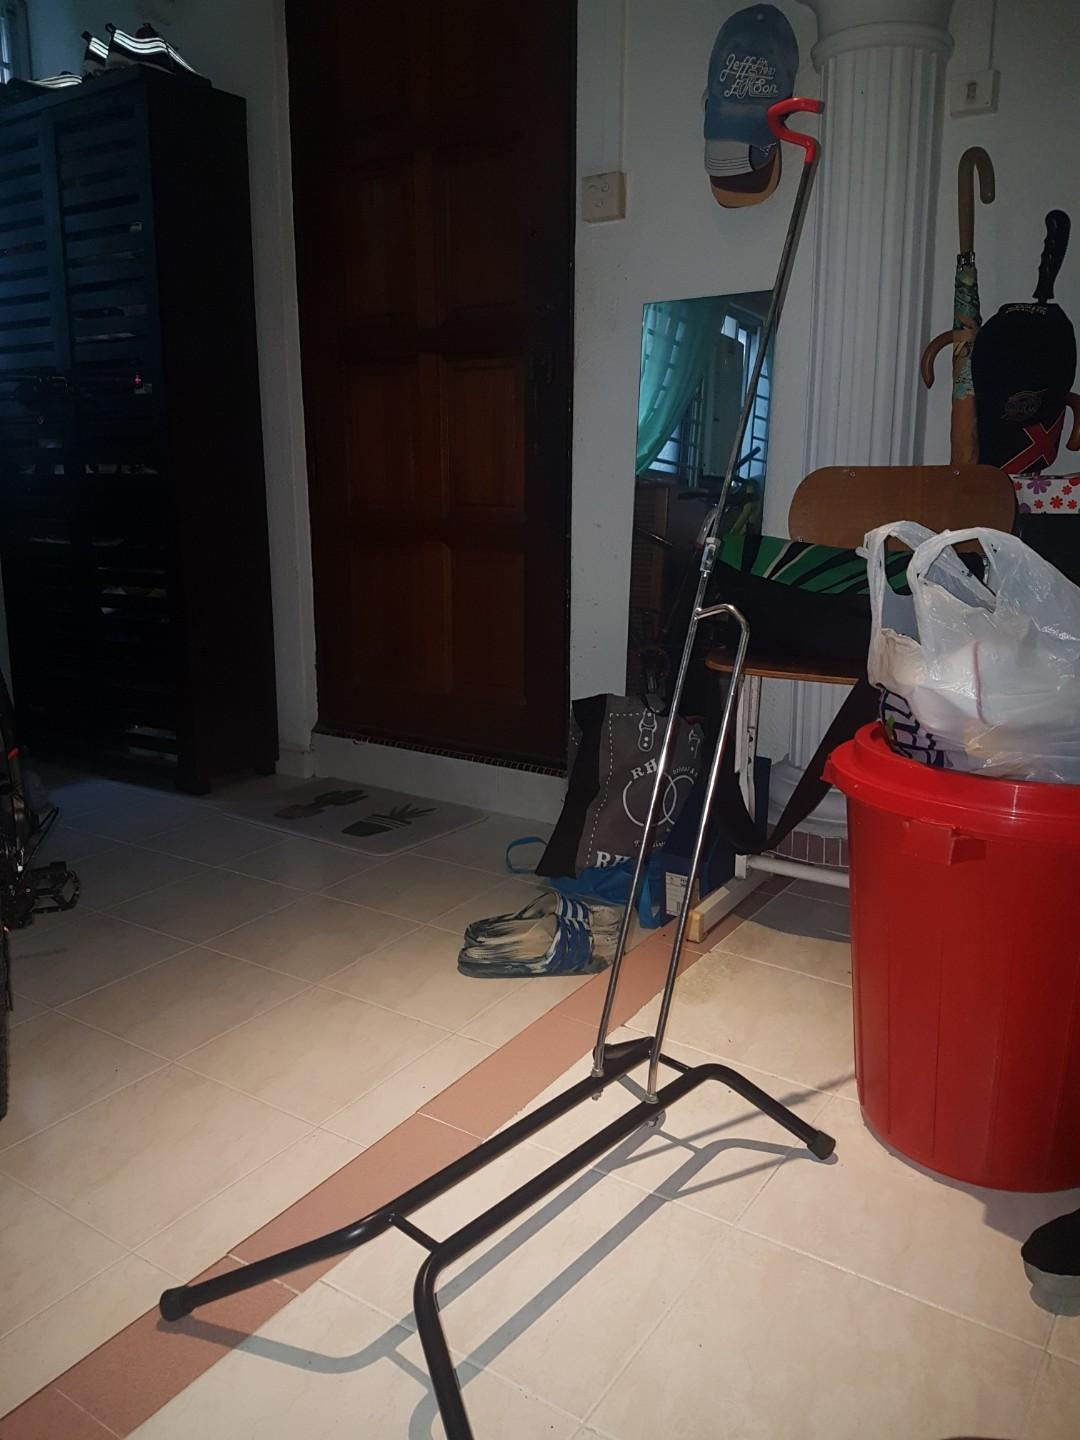 Bicycle L shaped stand rack